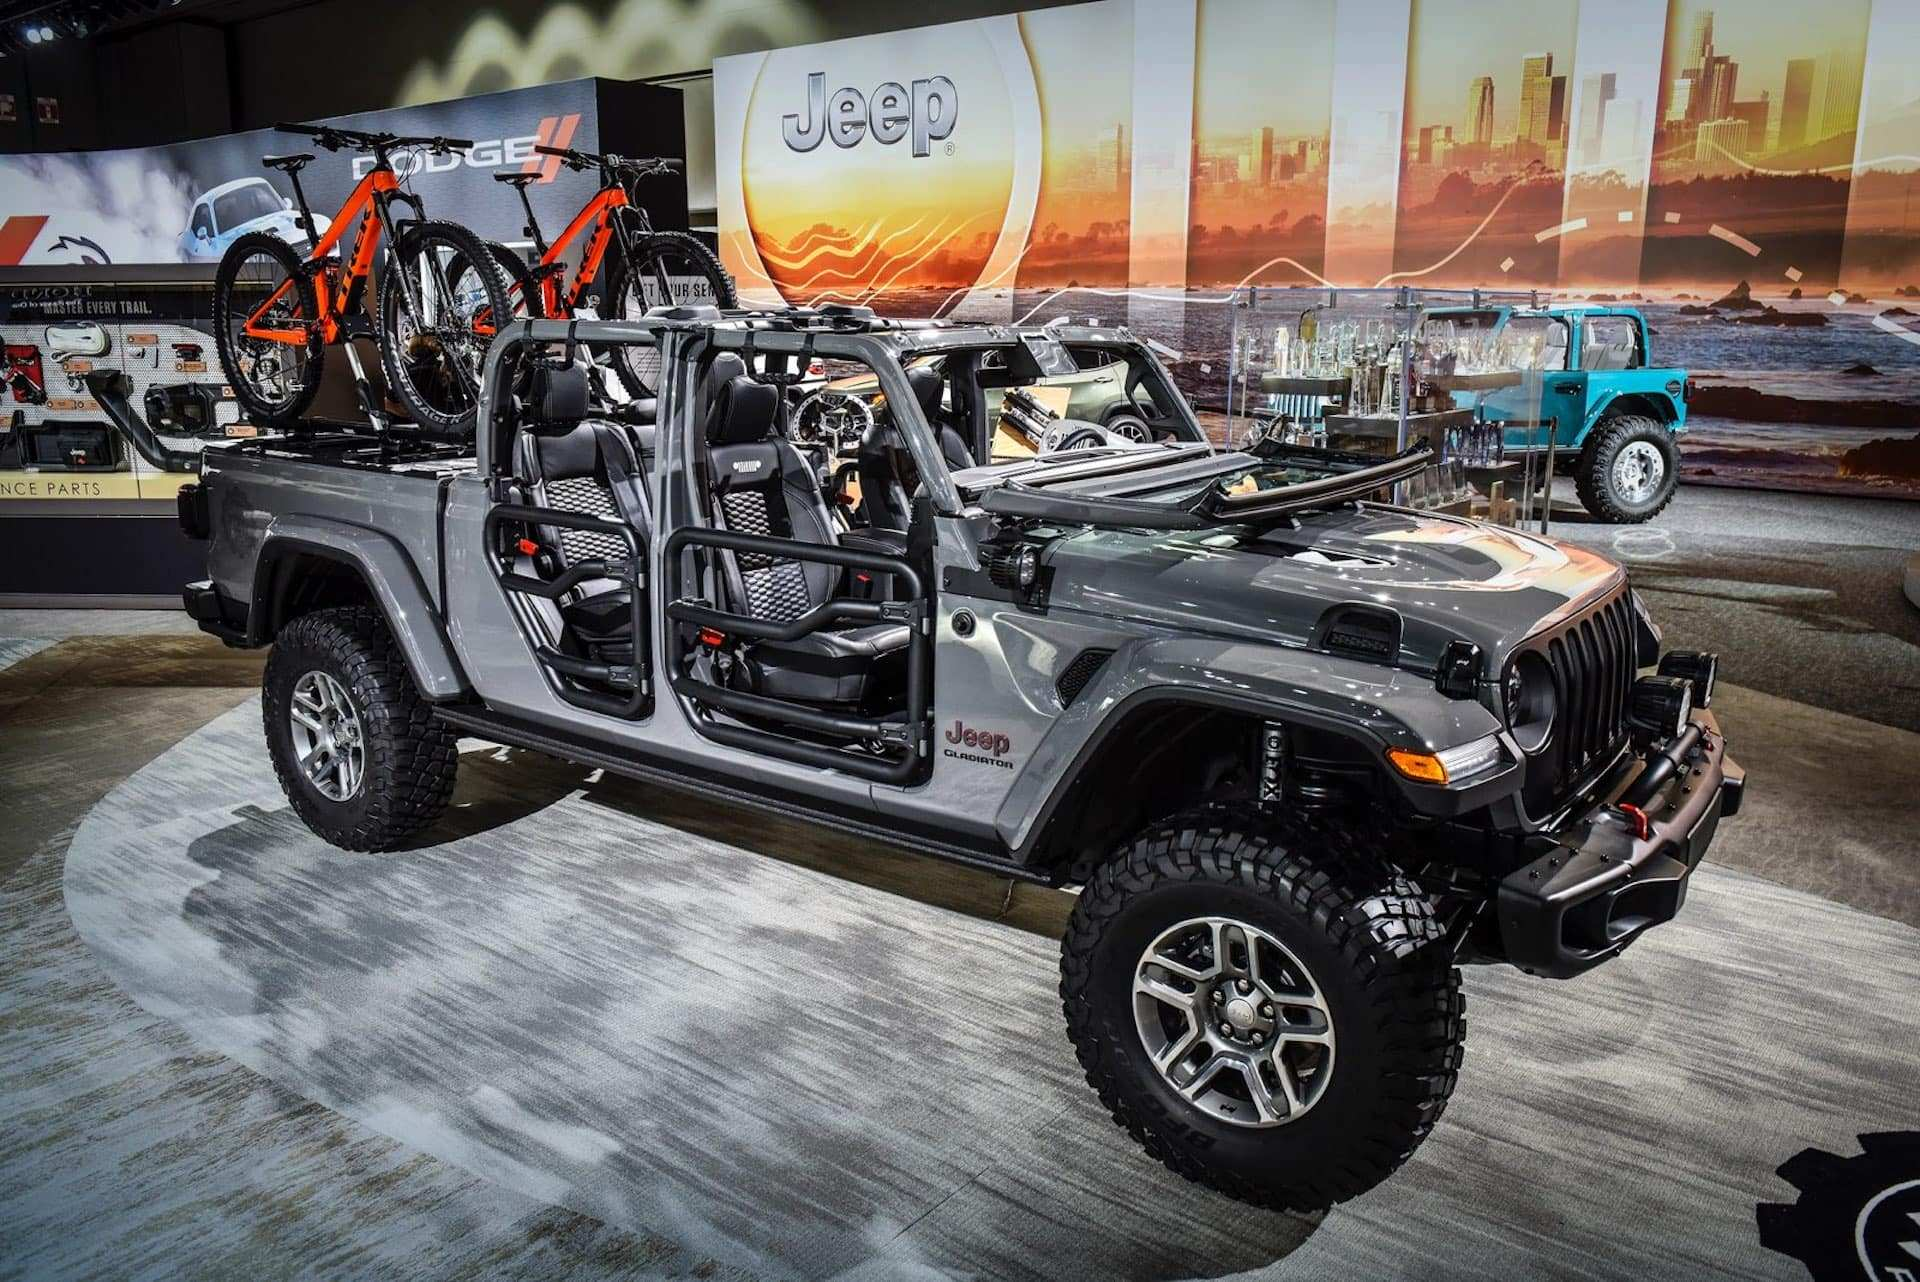 70 Great Jeep Gladiator Images 2020 Performance and New Engine by Jeep Gladiator Images 2020